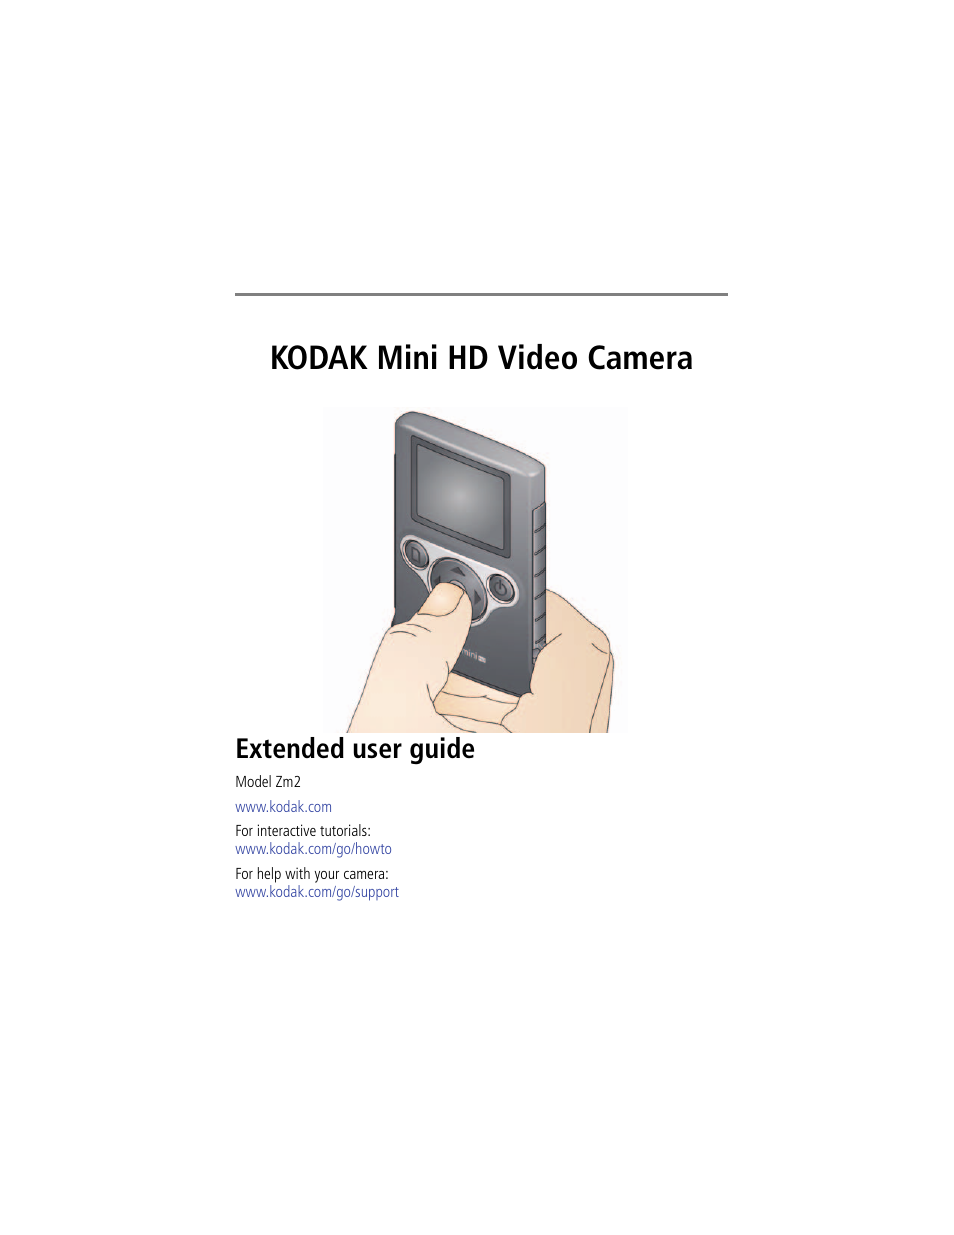 kodak zm2 user manual 25 pages rh manualsdir com Kodak Zi6 User Guide Kodak Mini Video Camera 2014